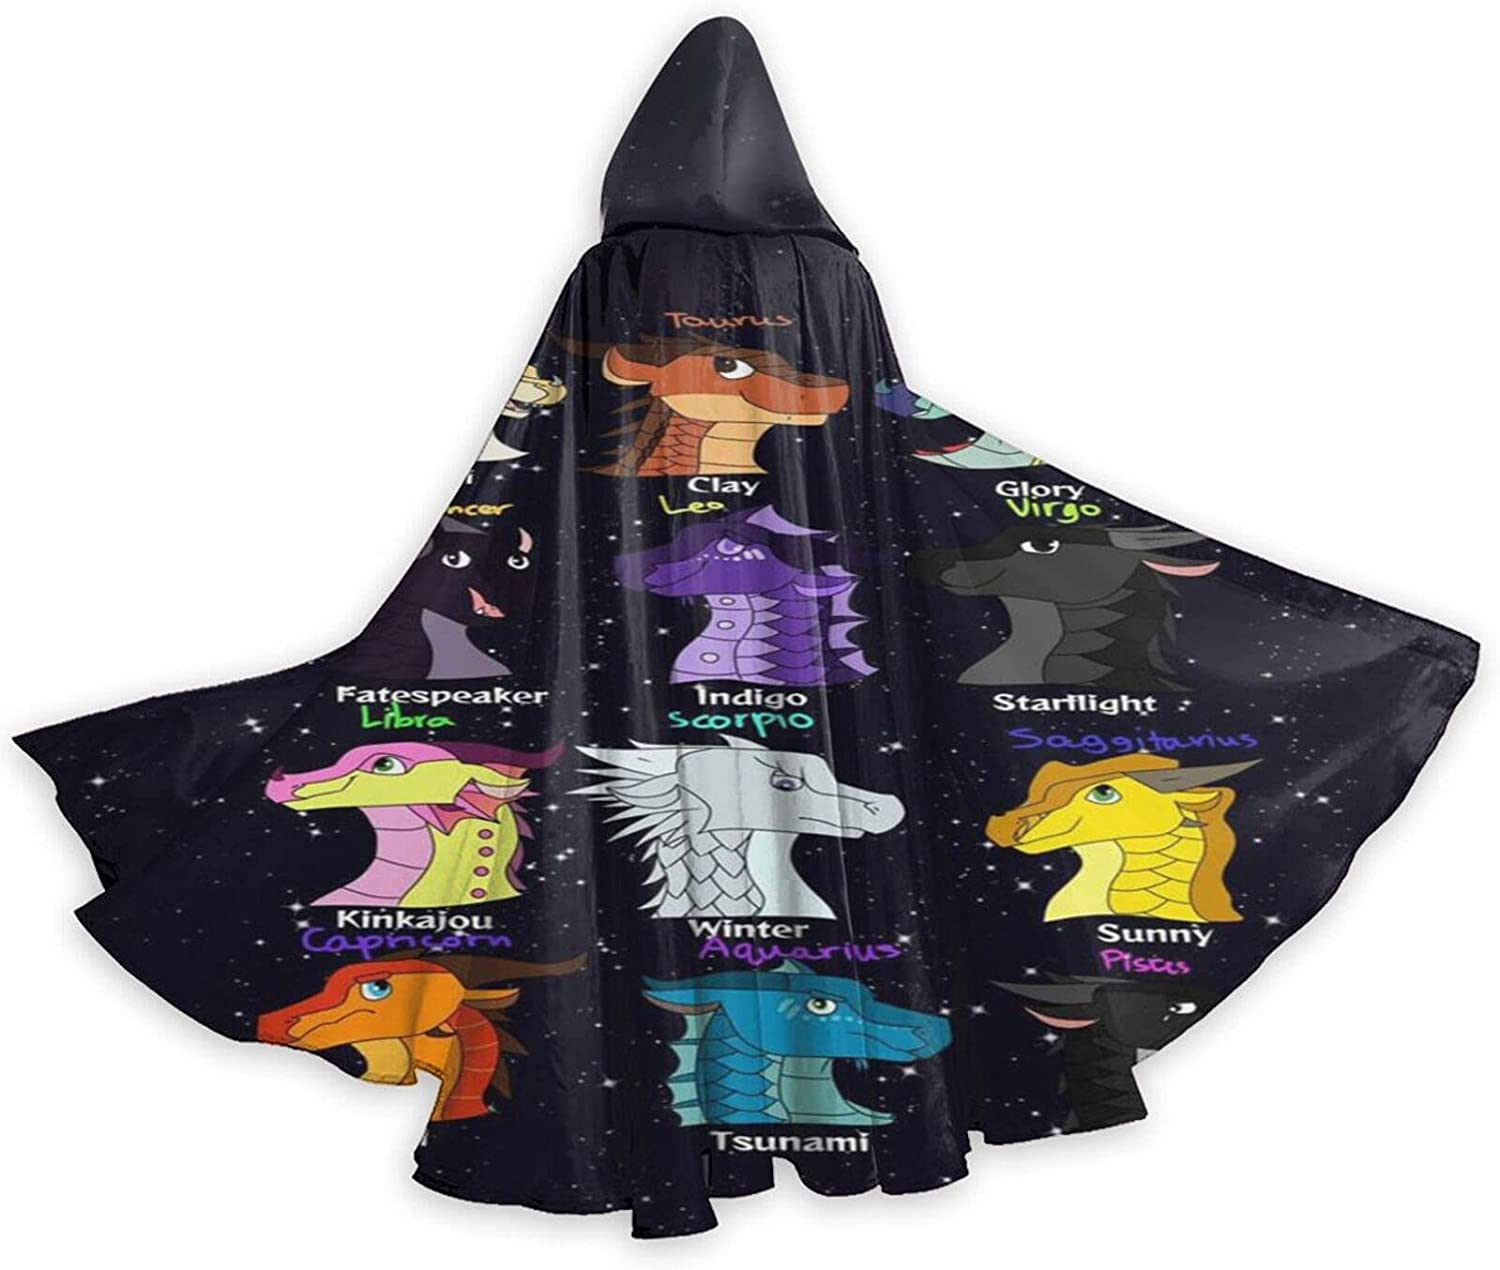 5 ☆ very popular Unisex W-ings of Our shop most popular Fire Hooded Cloak Cosplay Robe Halloween Wizard